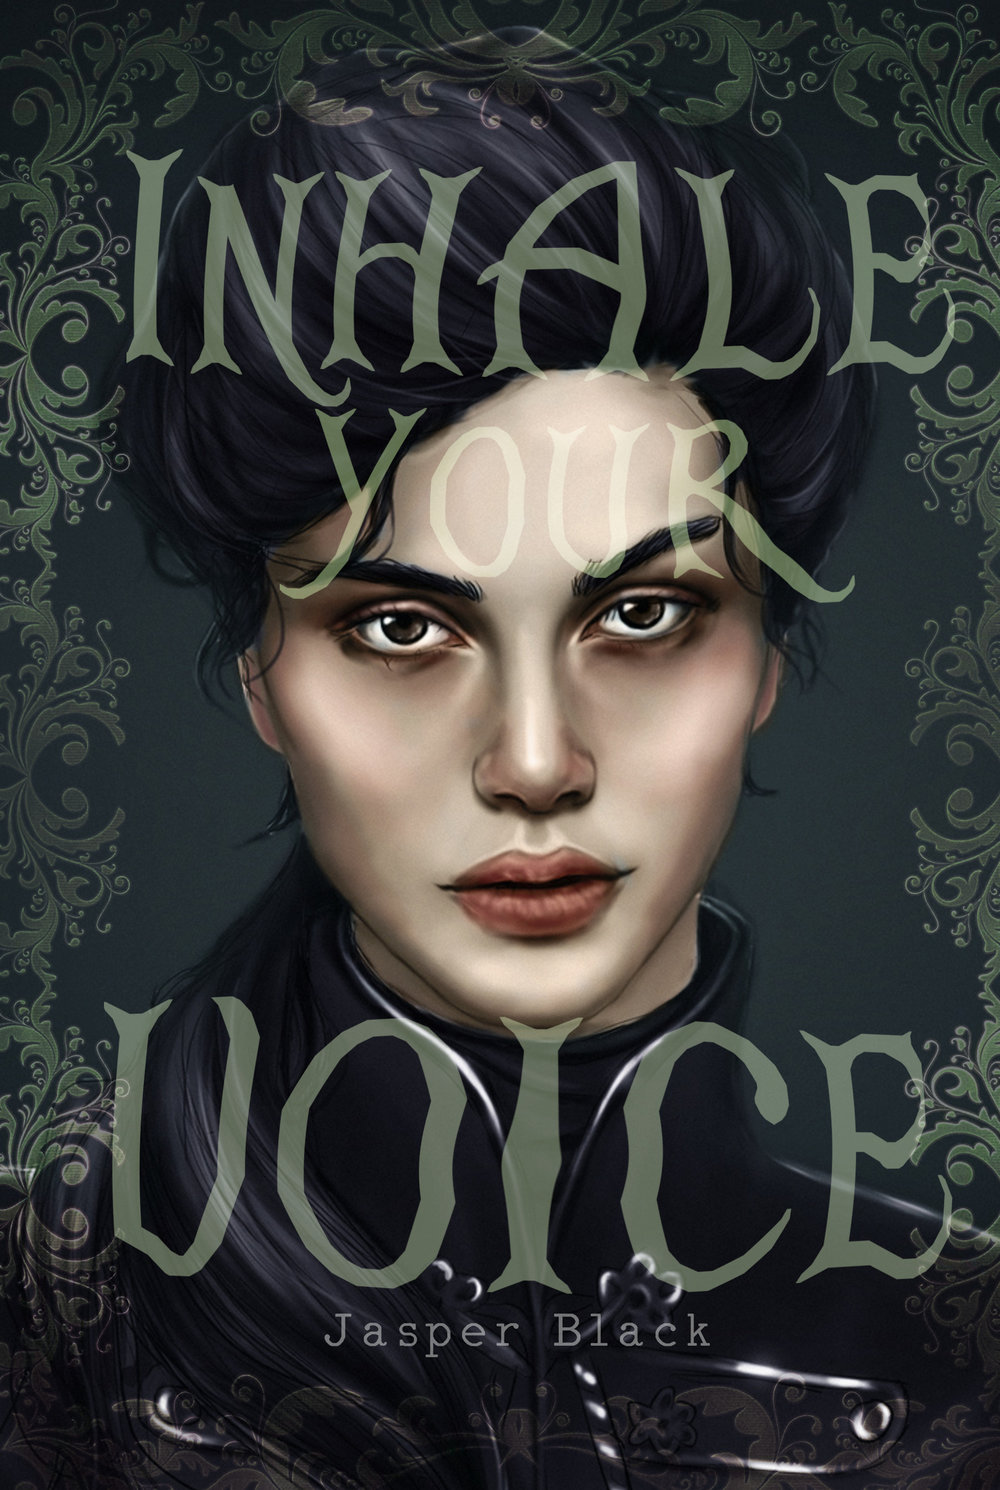 Book #5- Inhale Your Voice (TBA)